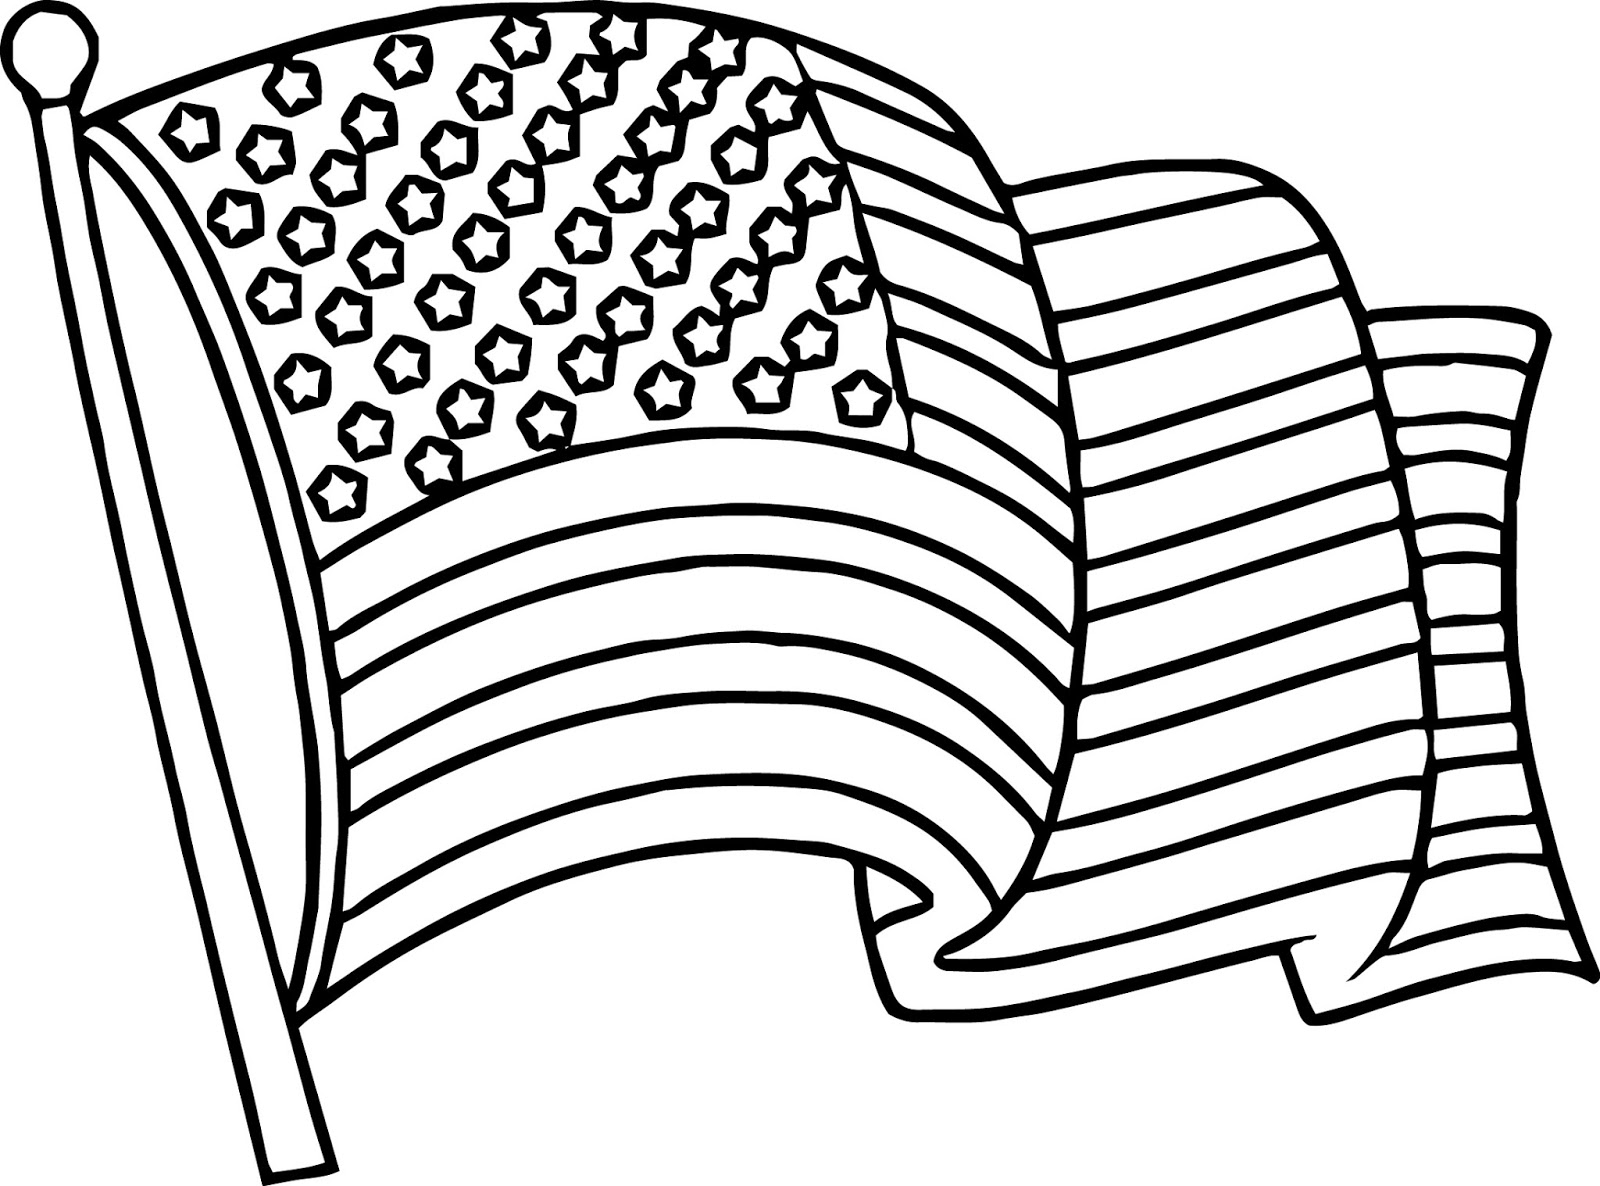 america coloring pages american flag coloring pages best coloring pages for kids america pages coloring